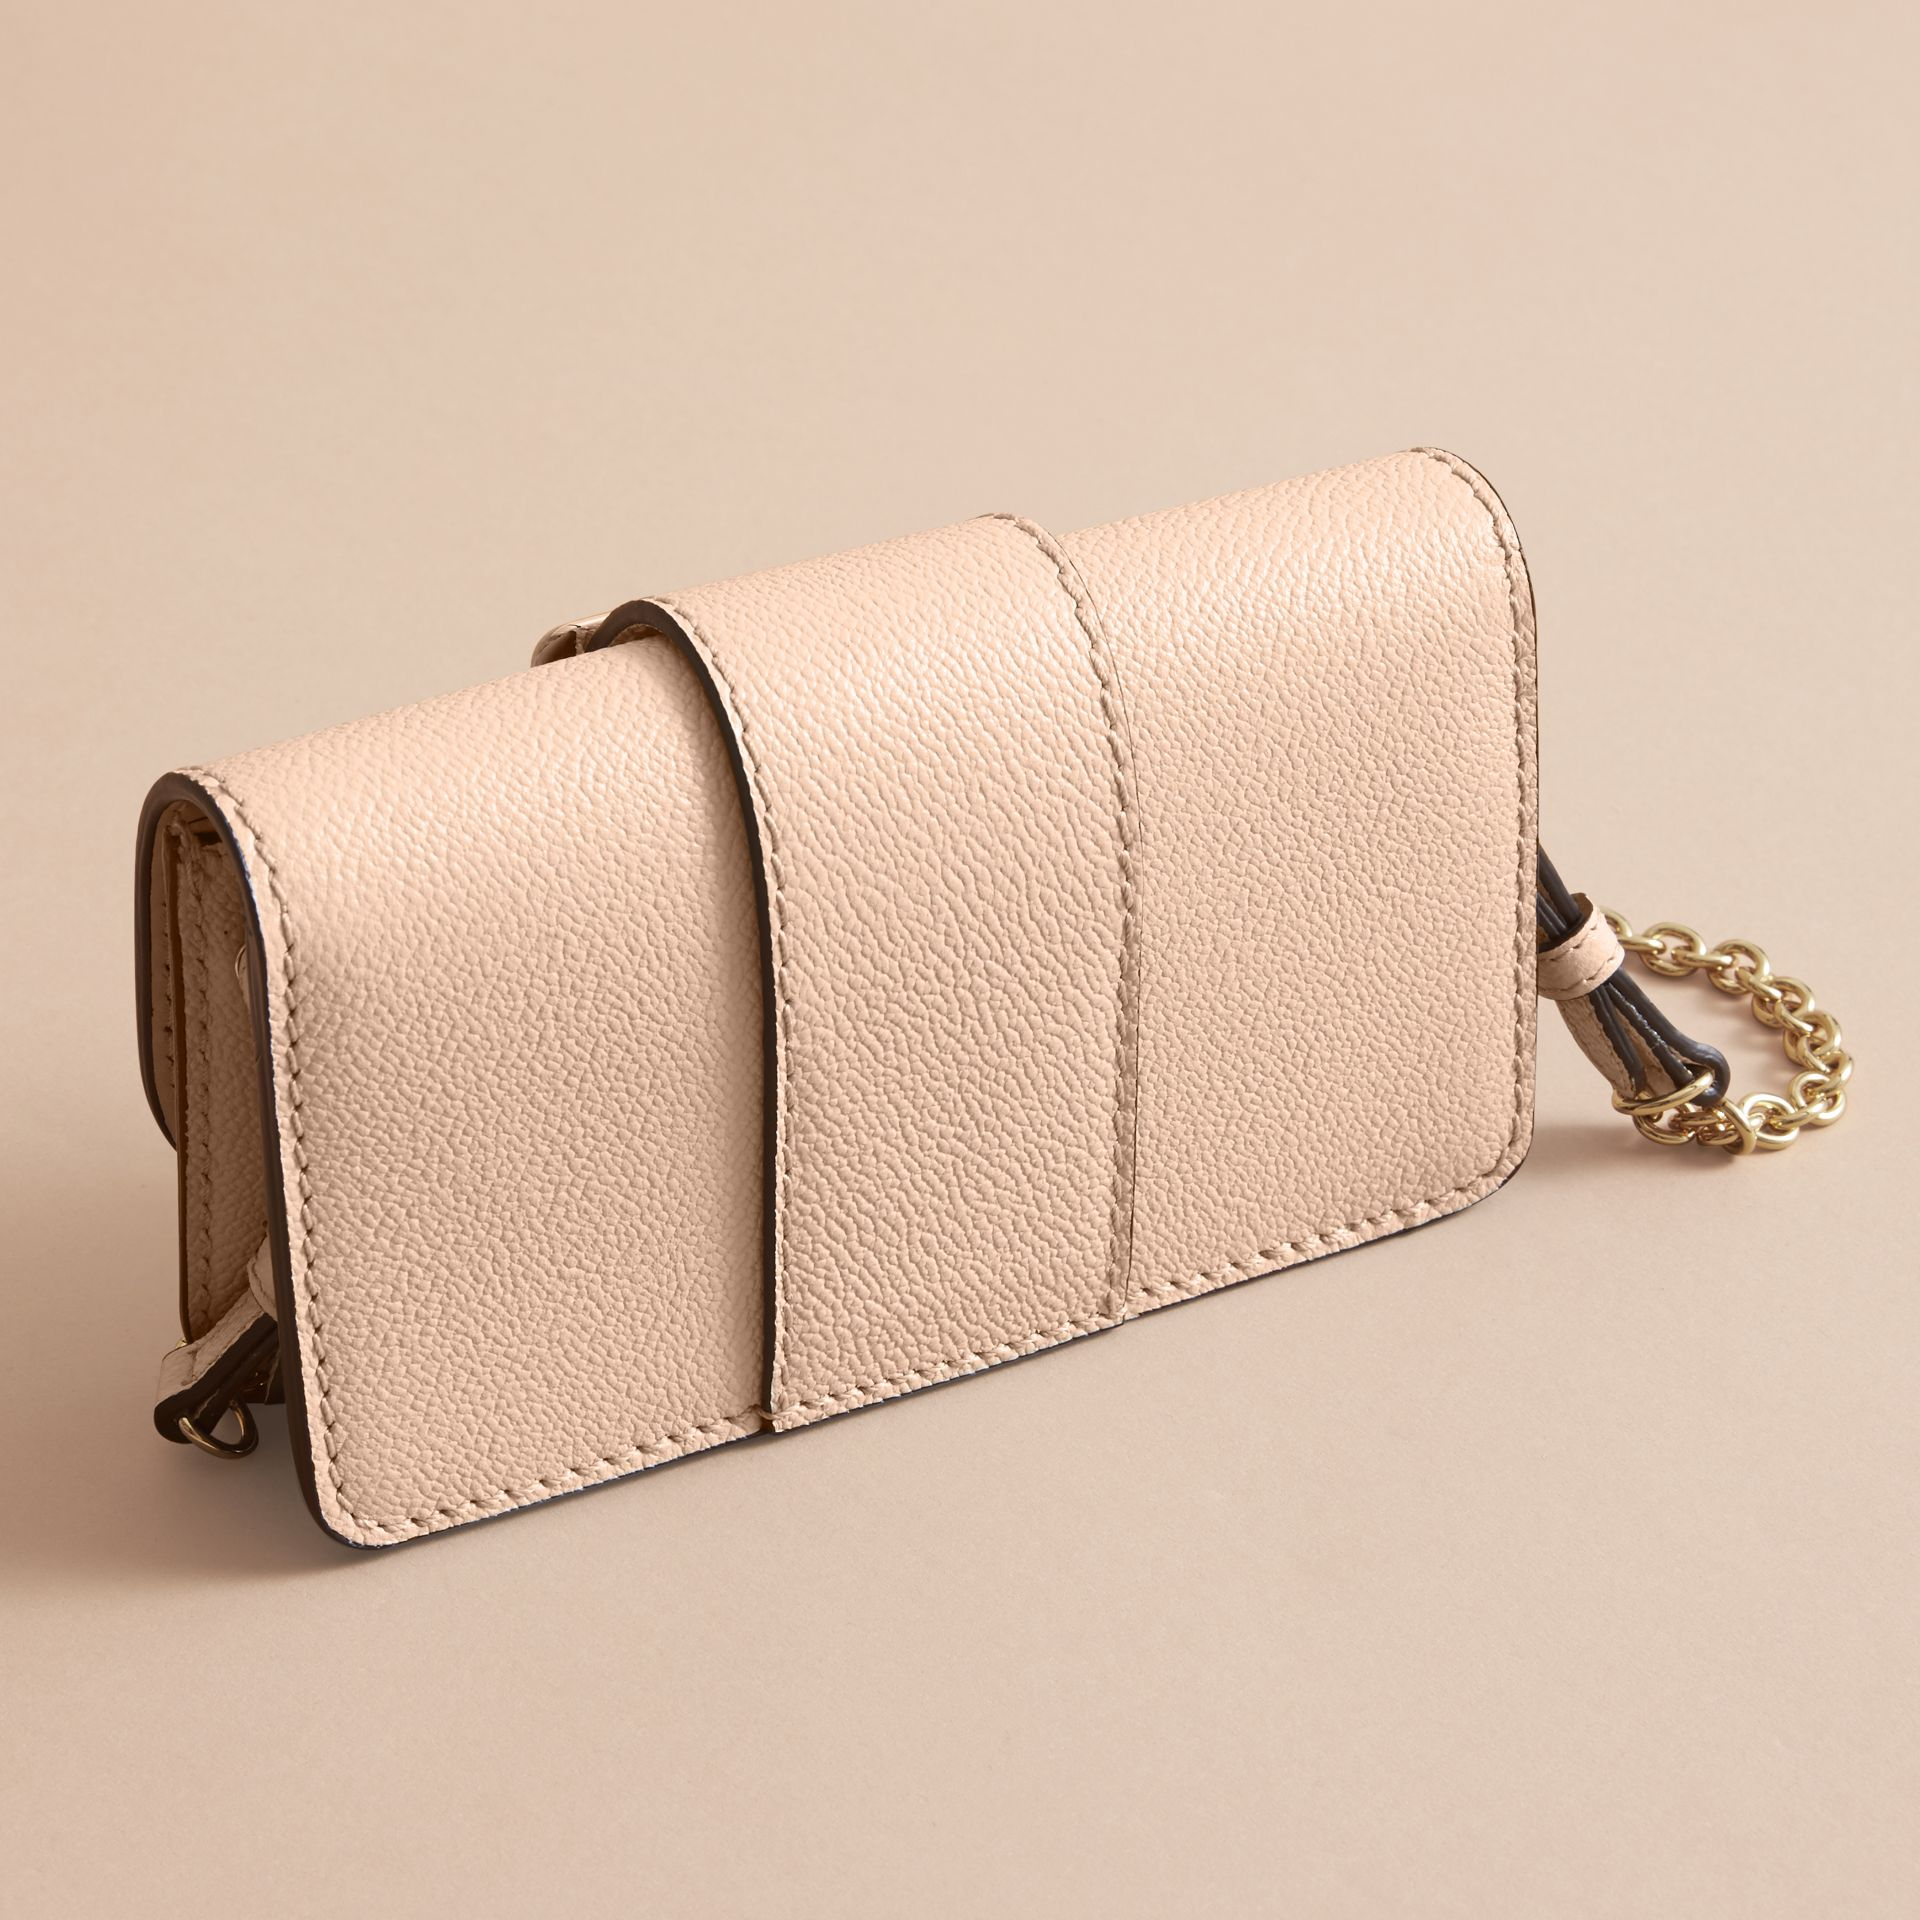 The Mini Buckle Bag in Grainy Leather in Limestone - Women | Burberry - gallery image 5